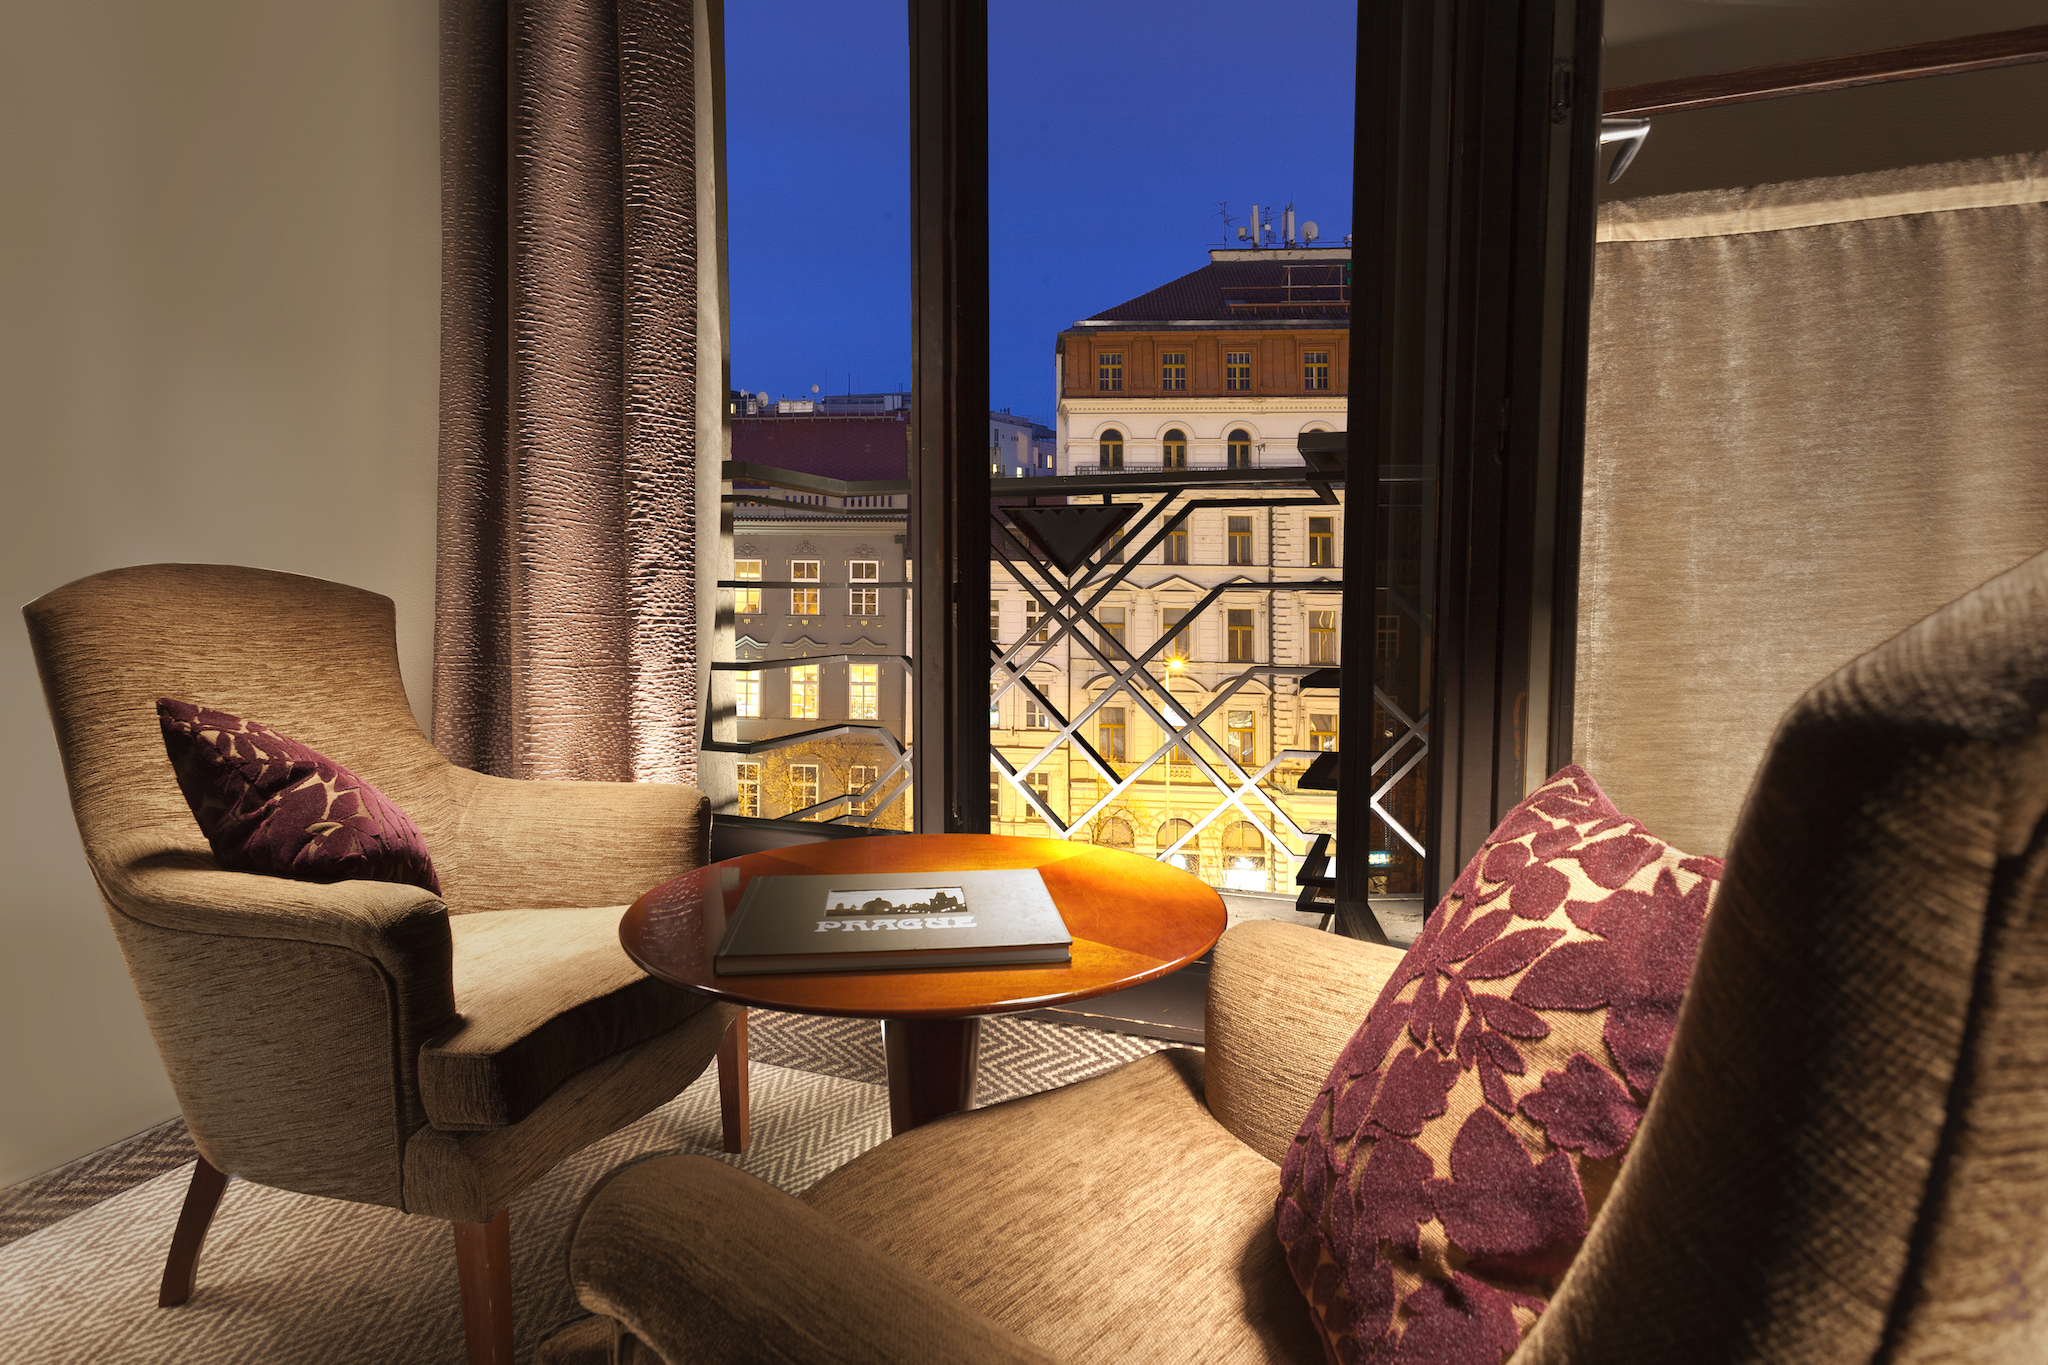 Jalta one of the best boutique hotels in nove mesto prague for Luxury boutique hotels prague